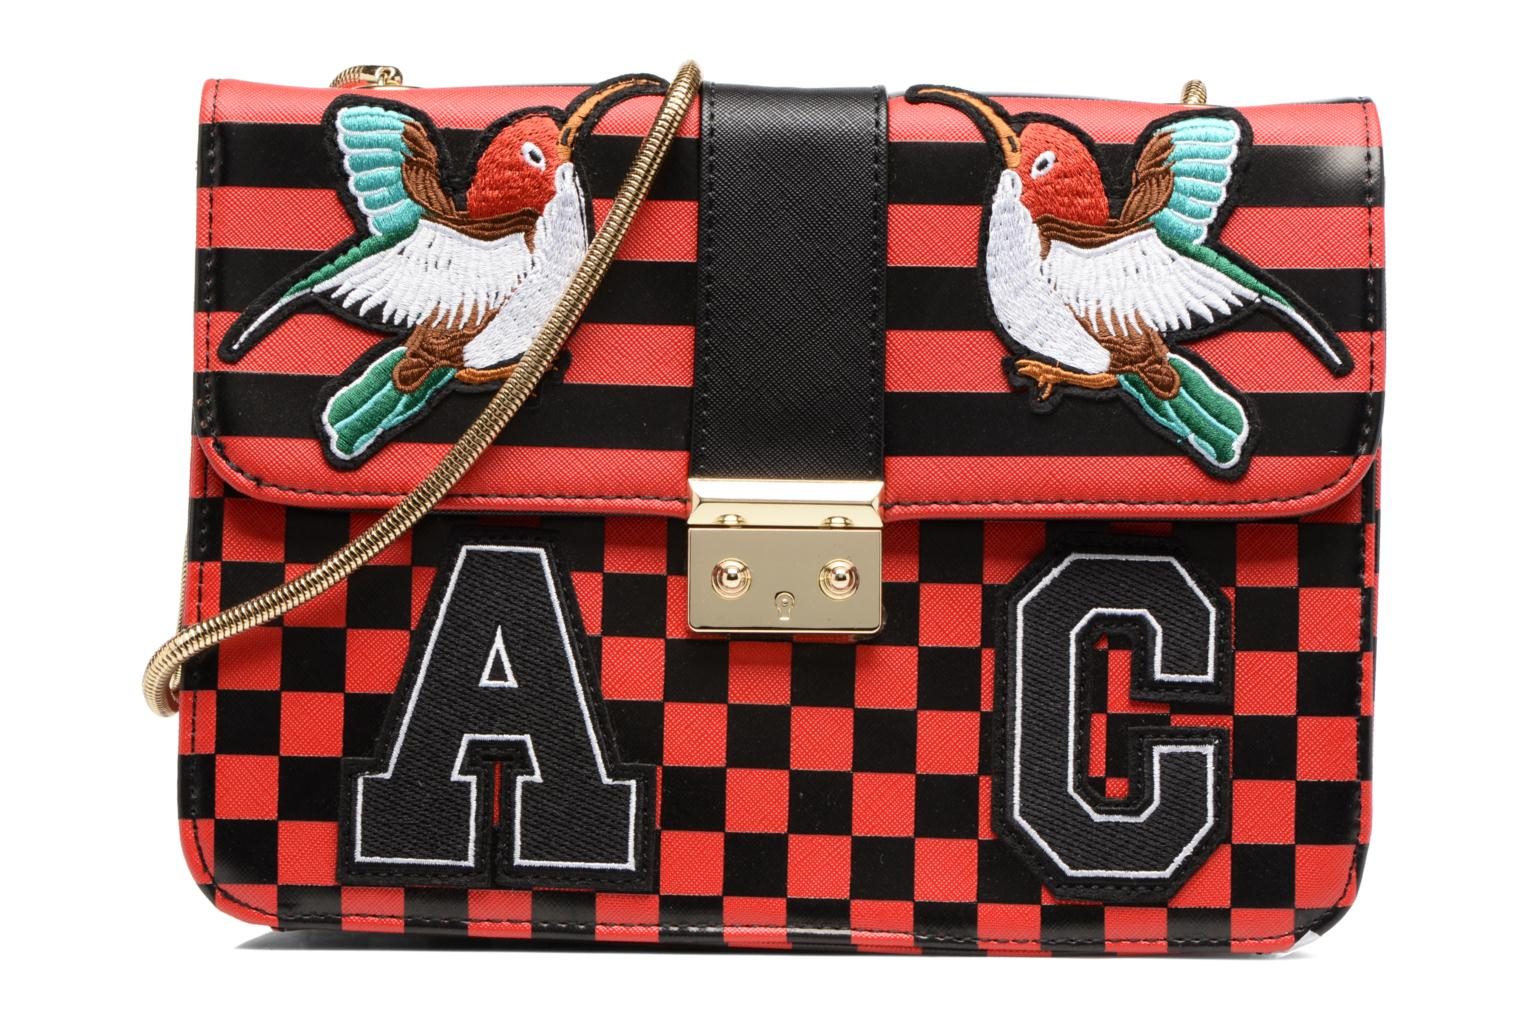 rouge Carreaux noir Shoulder Caesars L'Aetelier bag CATY L HffBaq